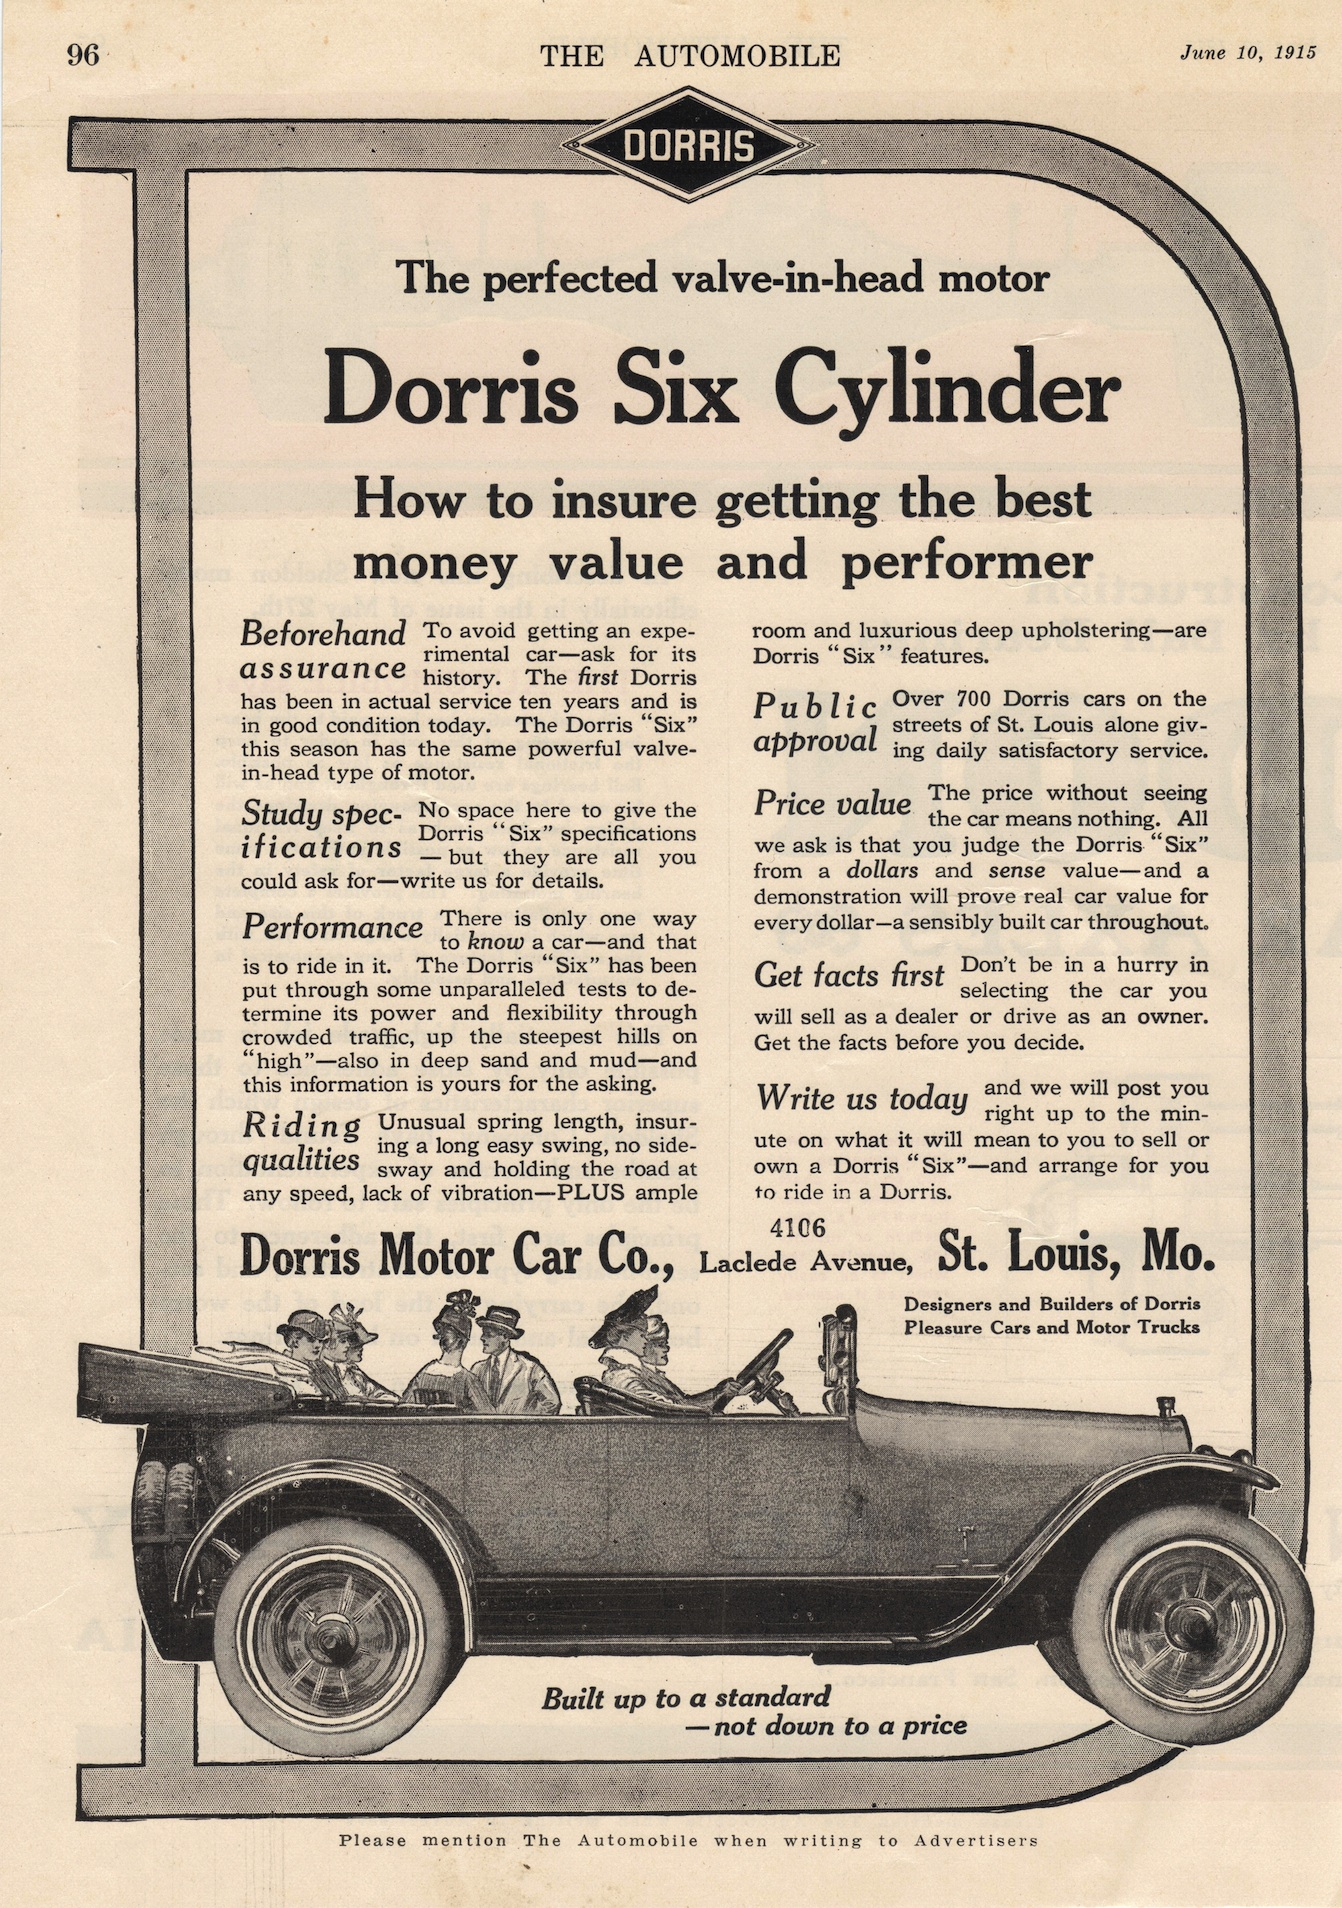 1915_Dorris_TheAutomobile_6_10_1915_Pg_96.jpg